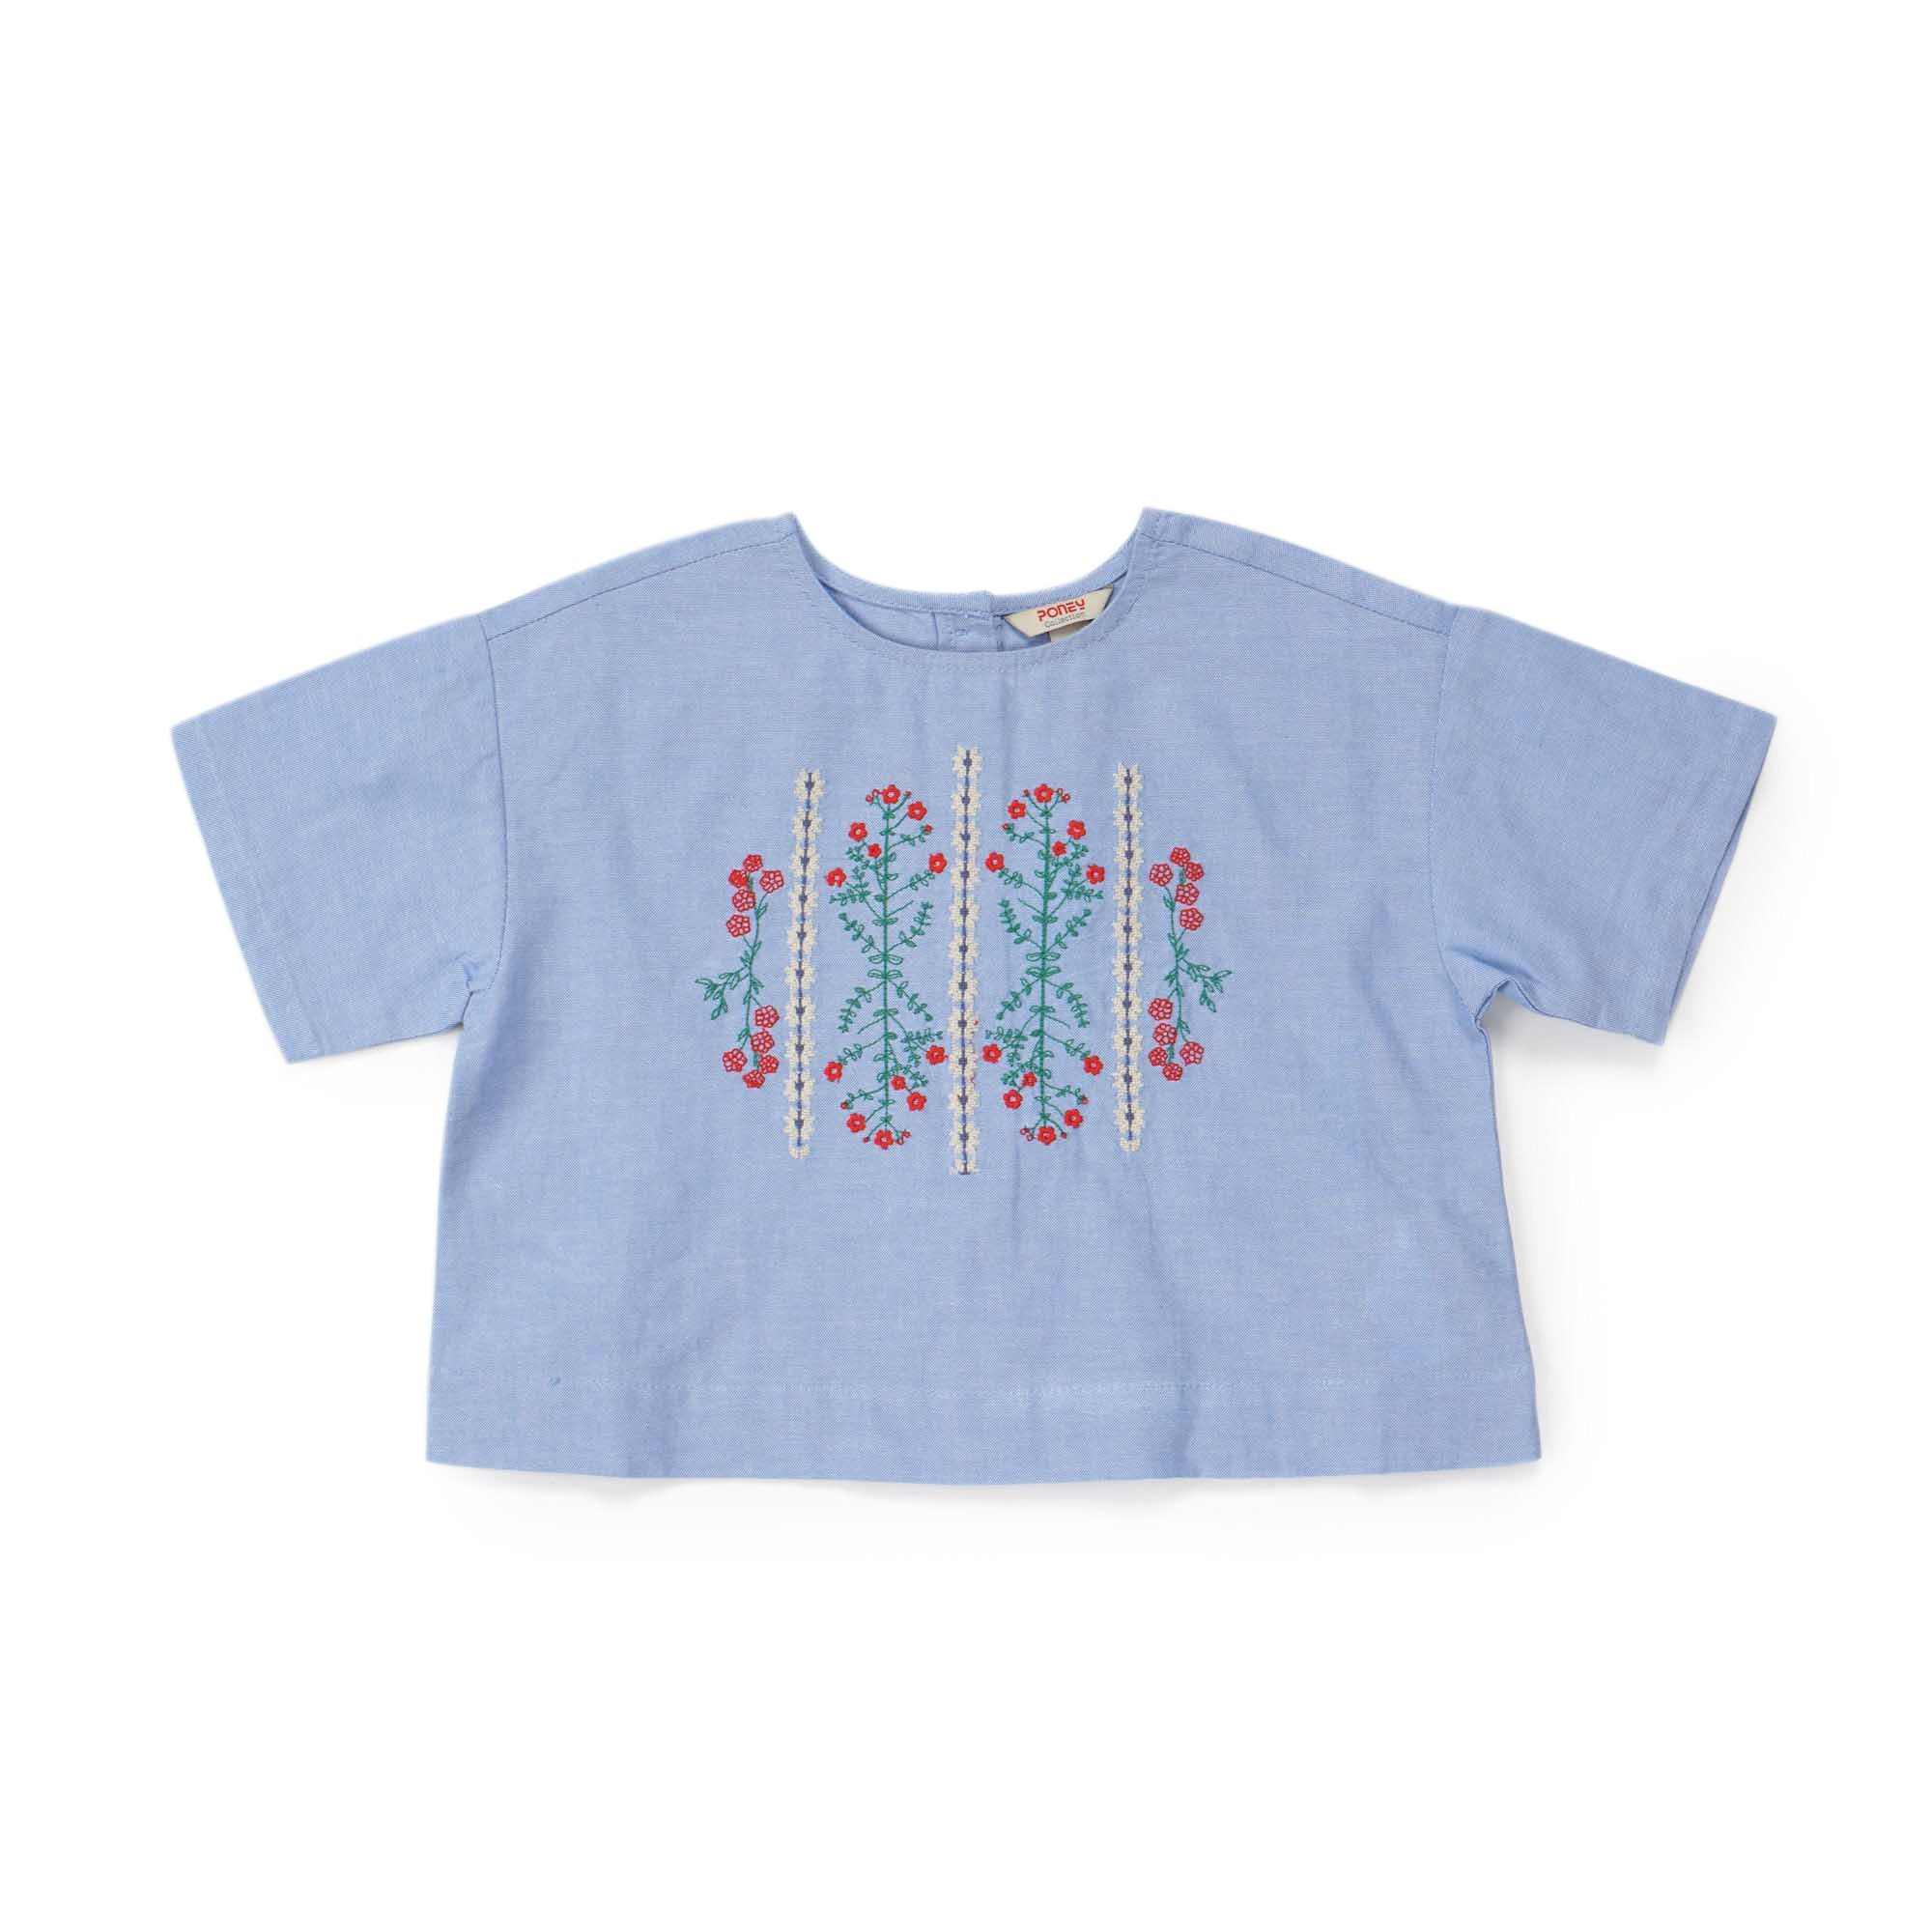 Poney Girls ShortSleeve Blouse 8175 (6mths-12yrs)